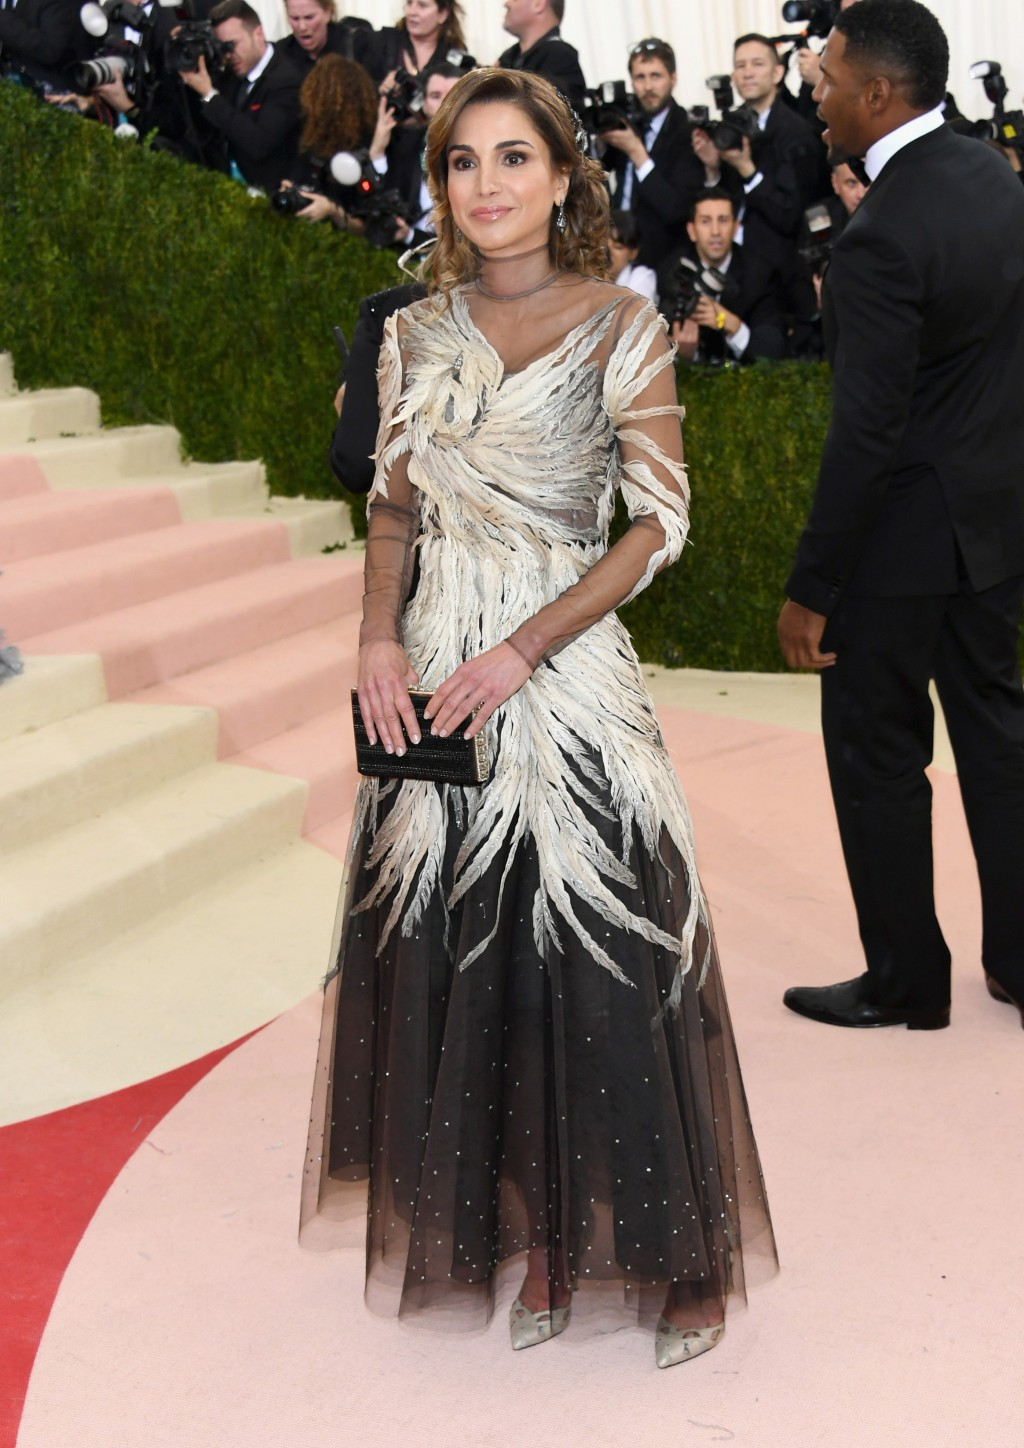 Queen Rania of Jordan Dazzles at the Met Gala